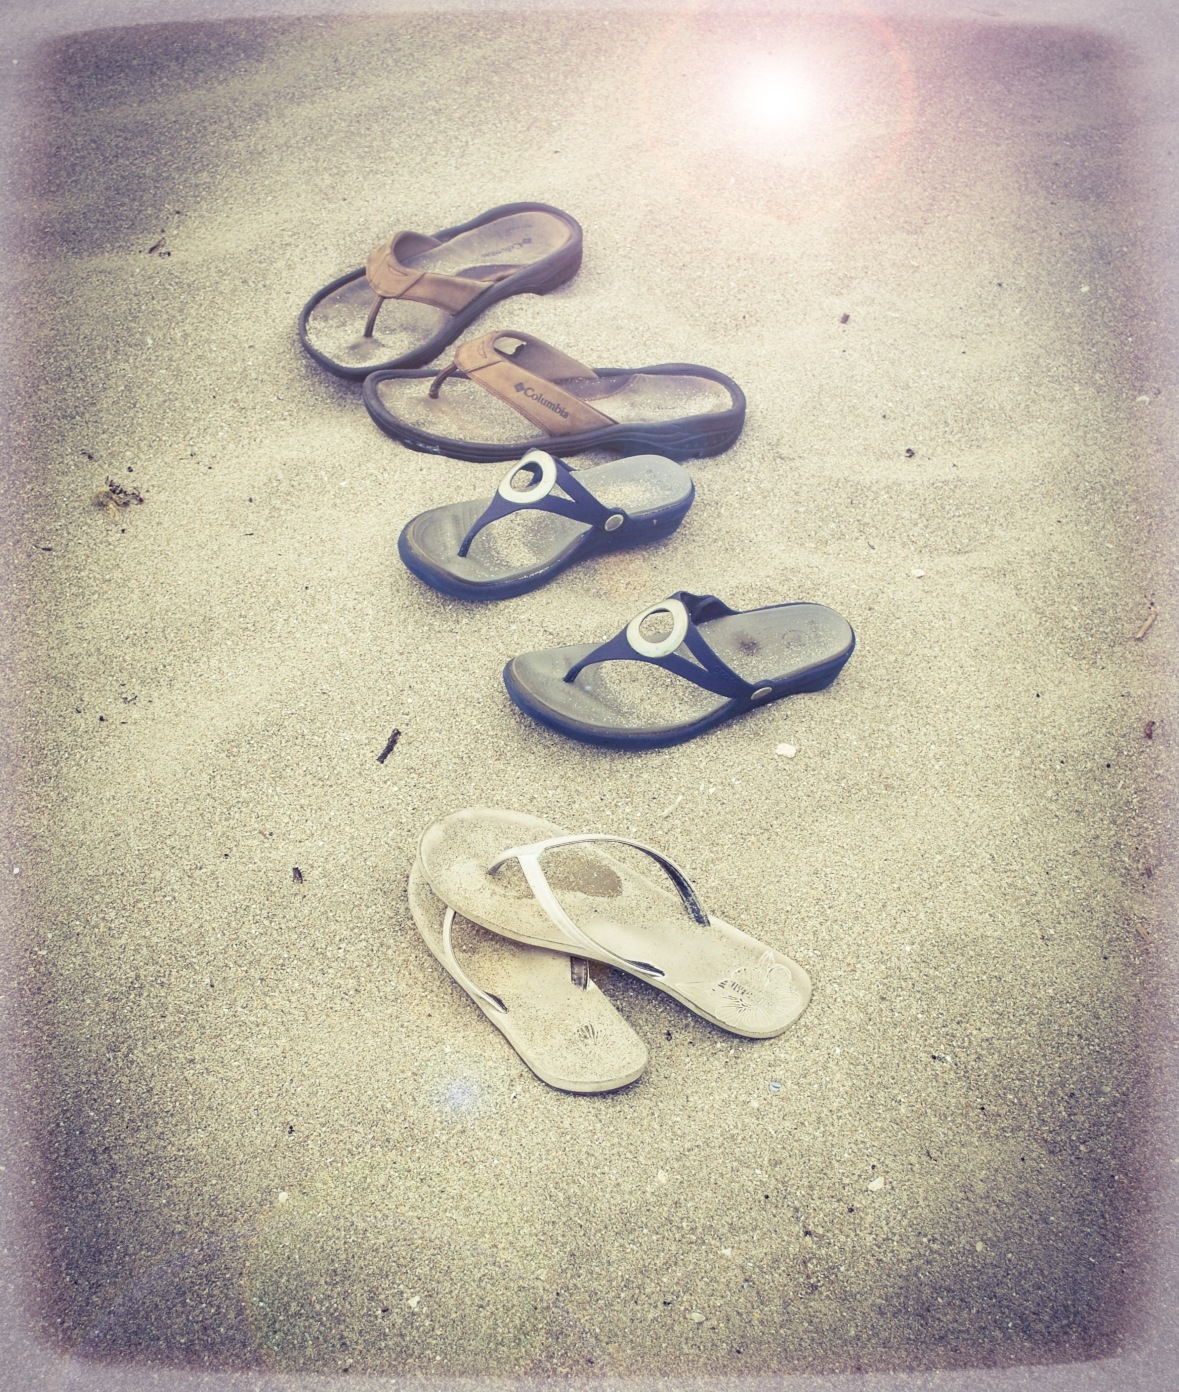 Toes in the Sand by R. L. Lowery